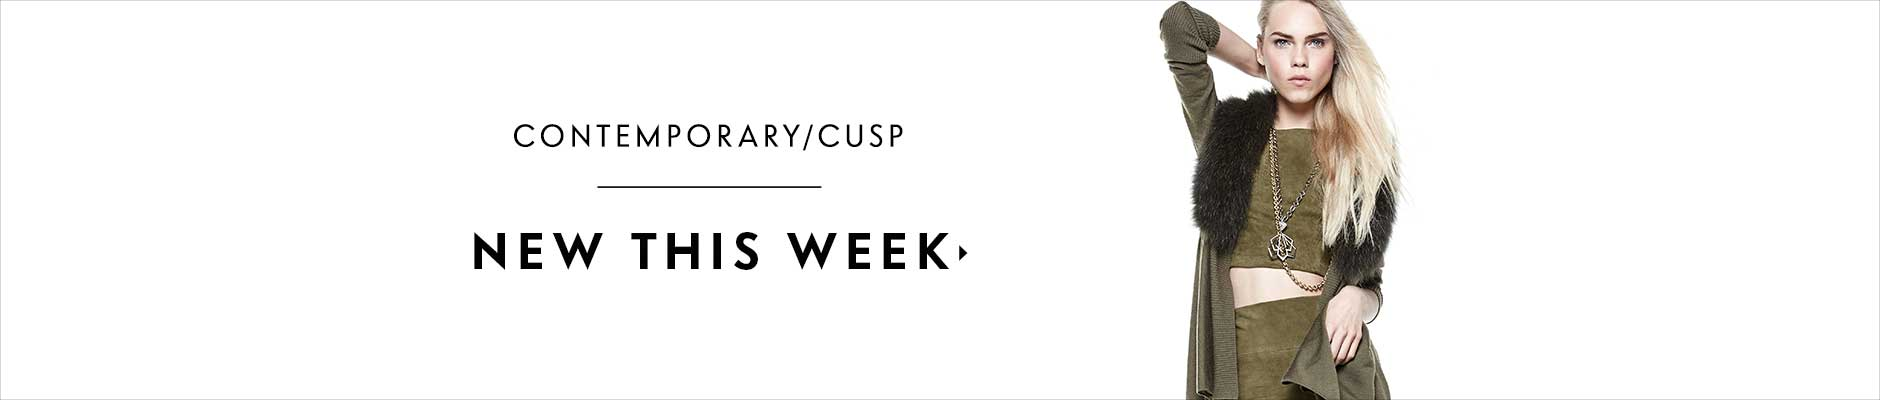 Contemporary Cusp New This Week